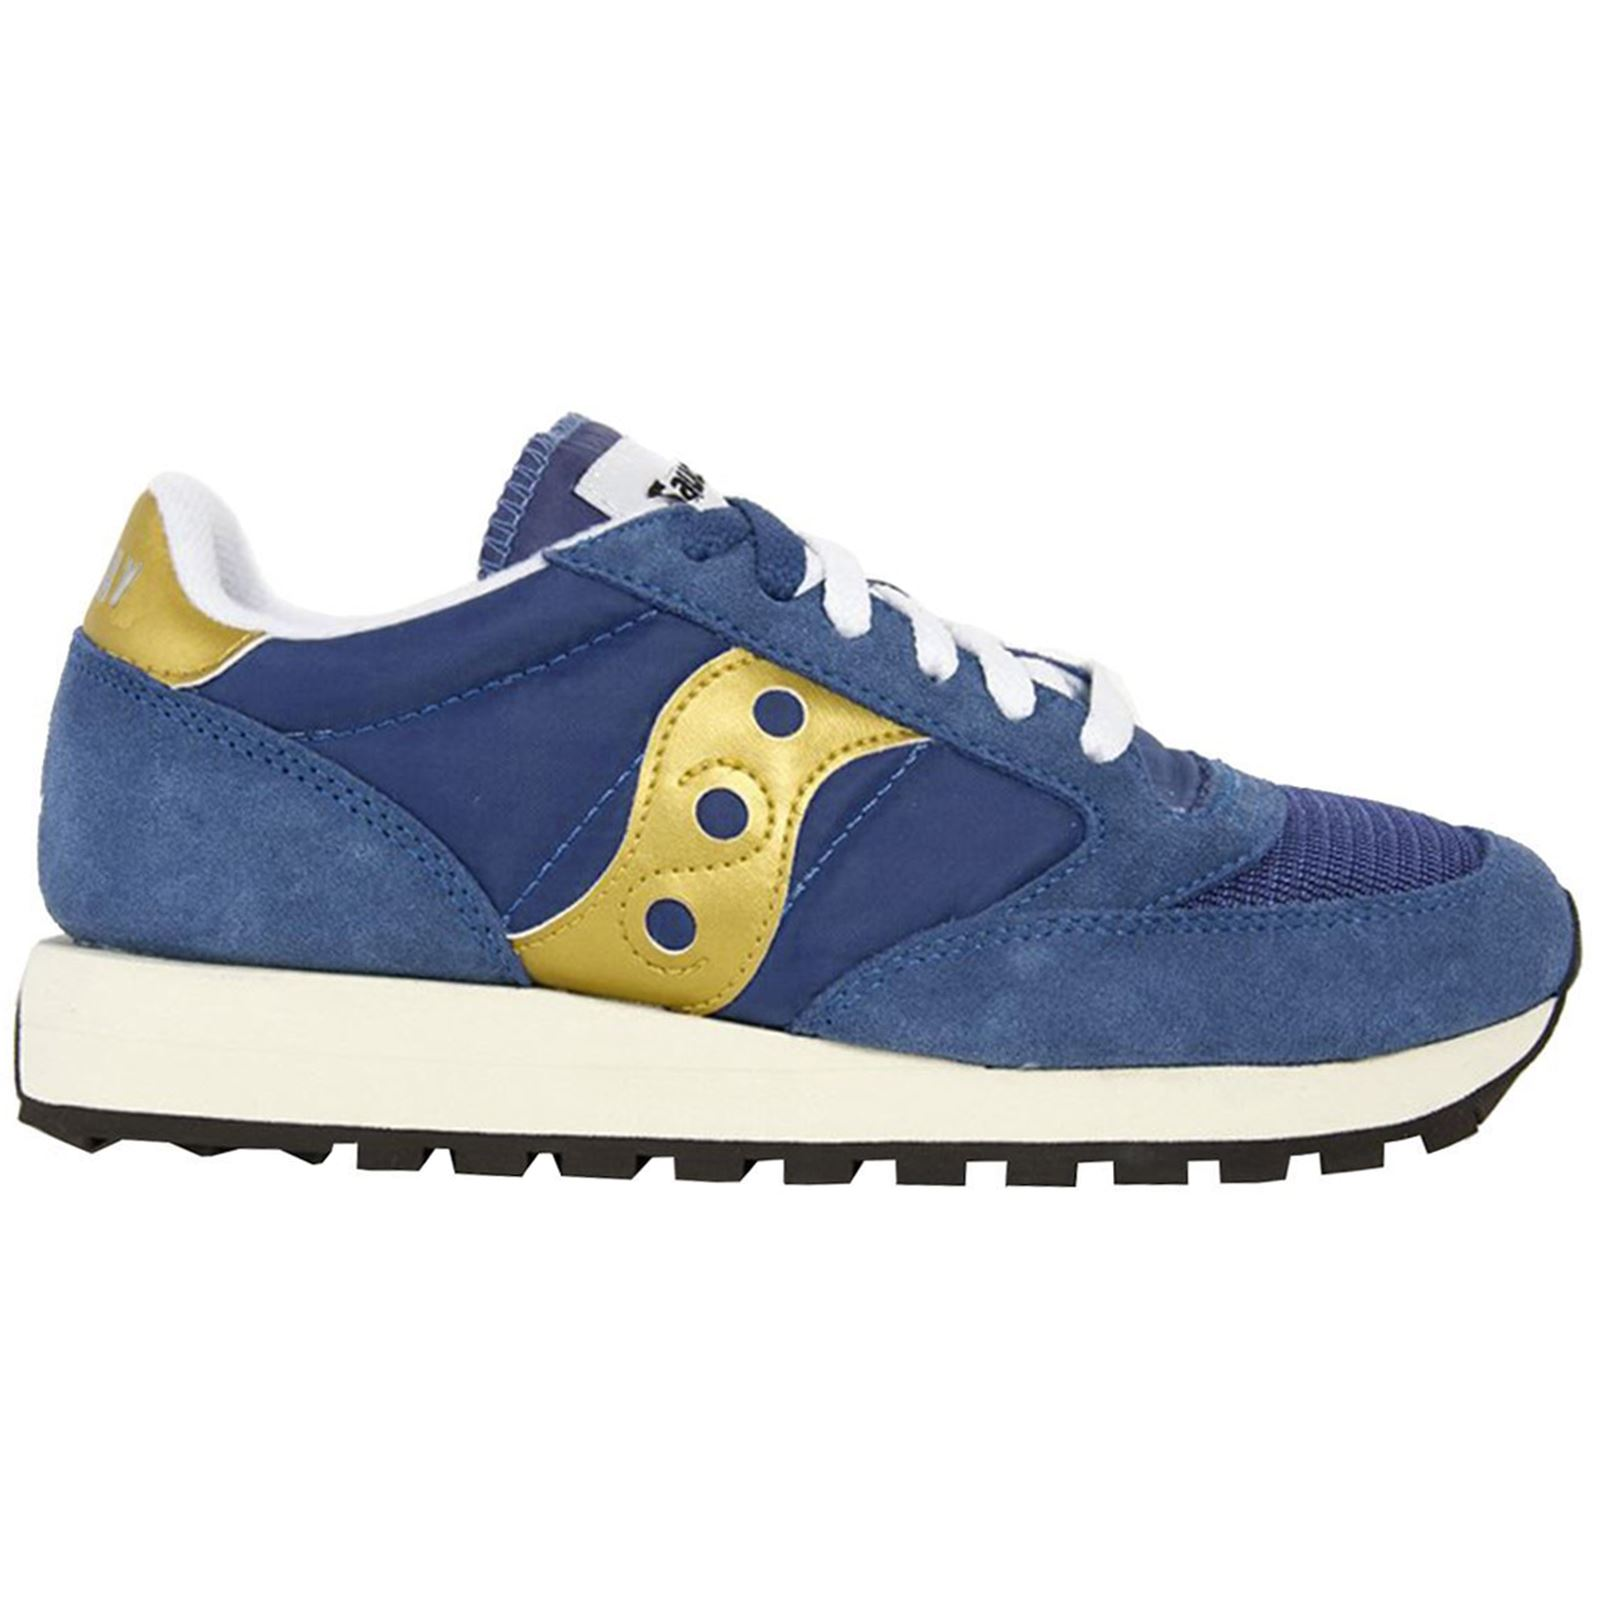 a79e307e Details about Saucony Jazz Original Vintage S70368-22 Navy Gold Mens  Low-top Athletic Trainers